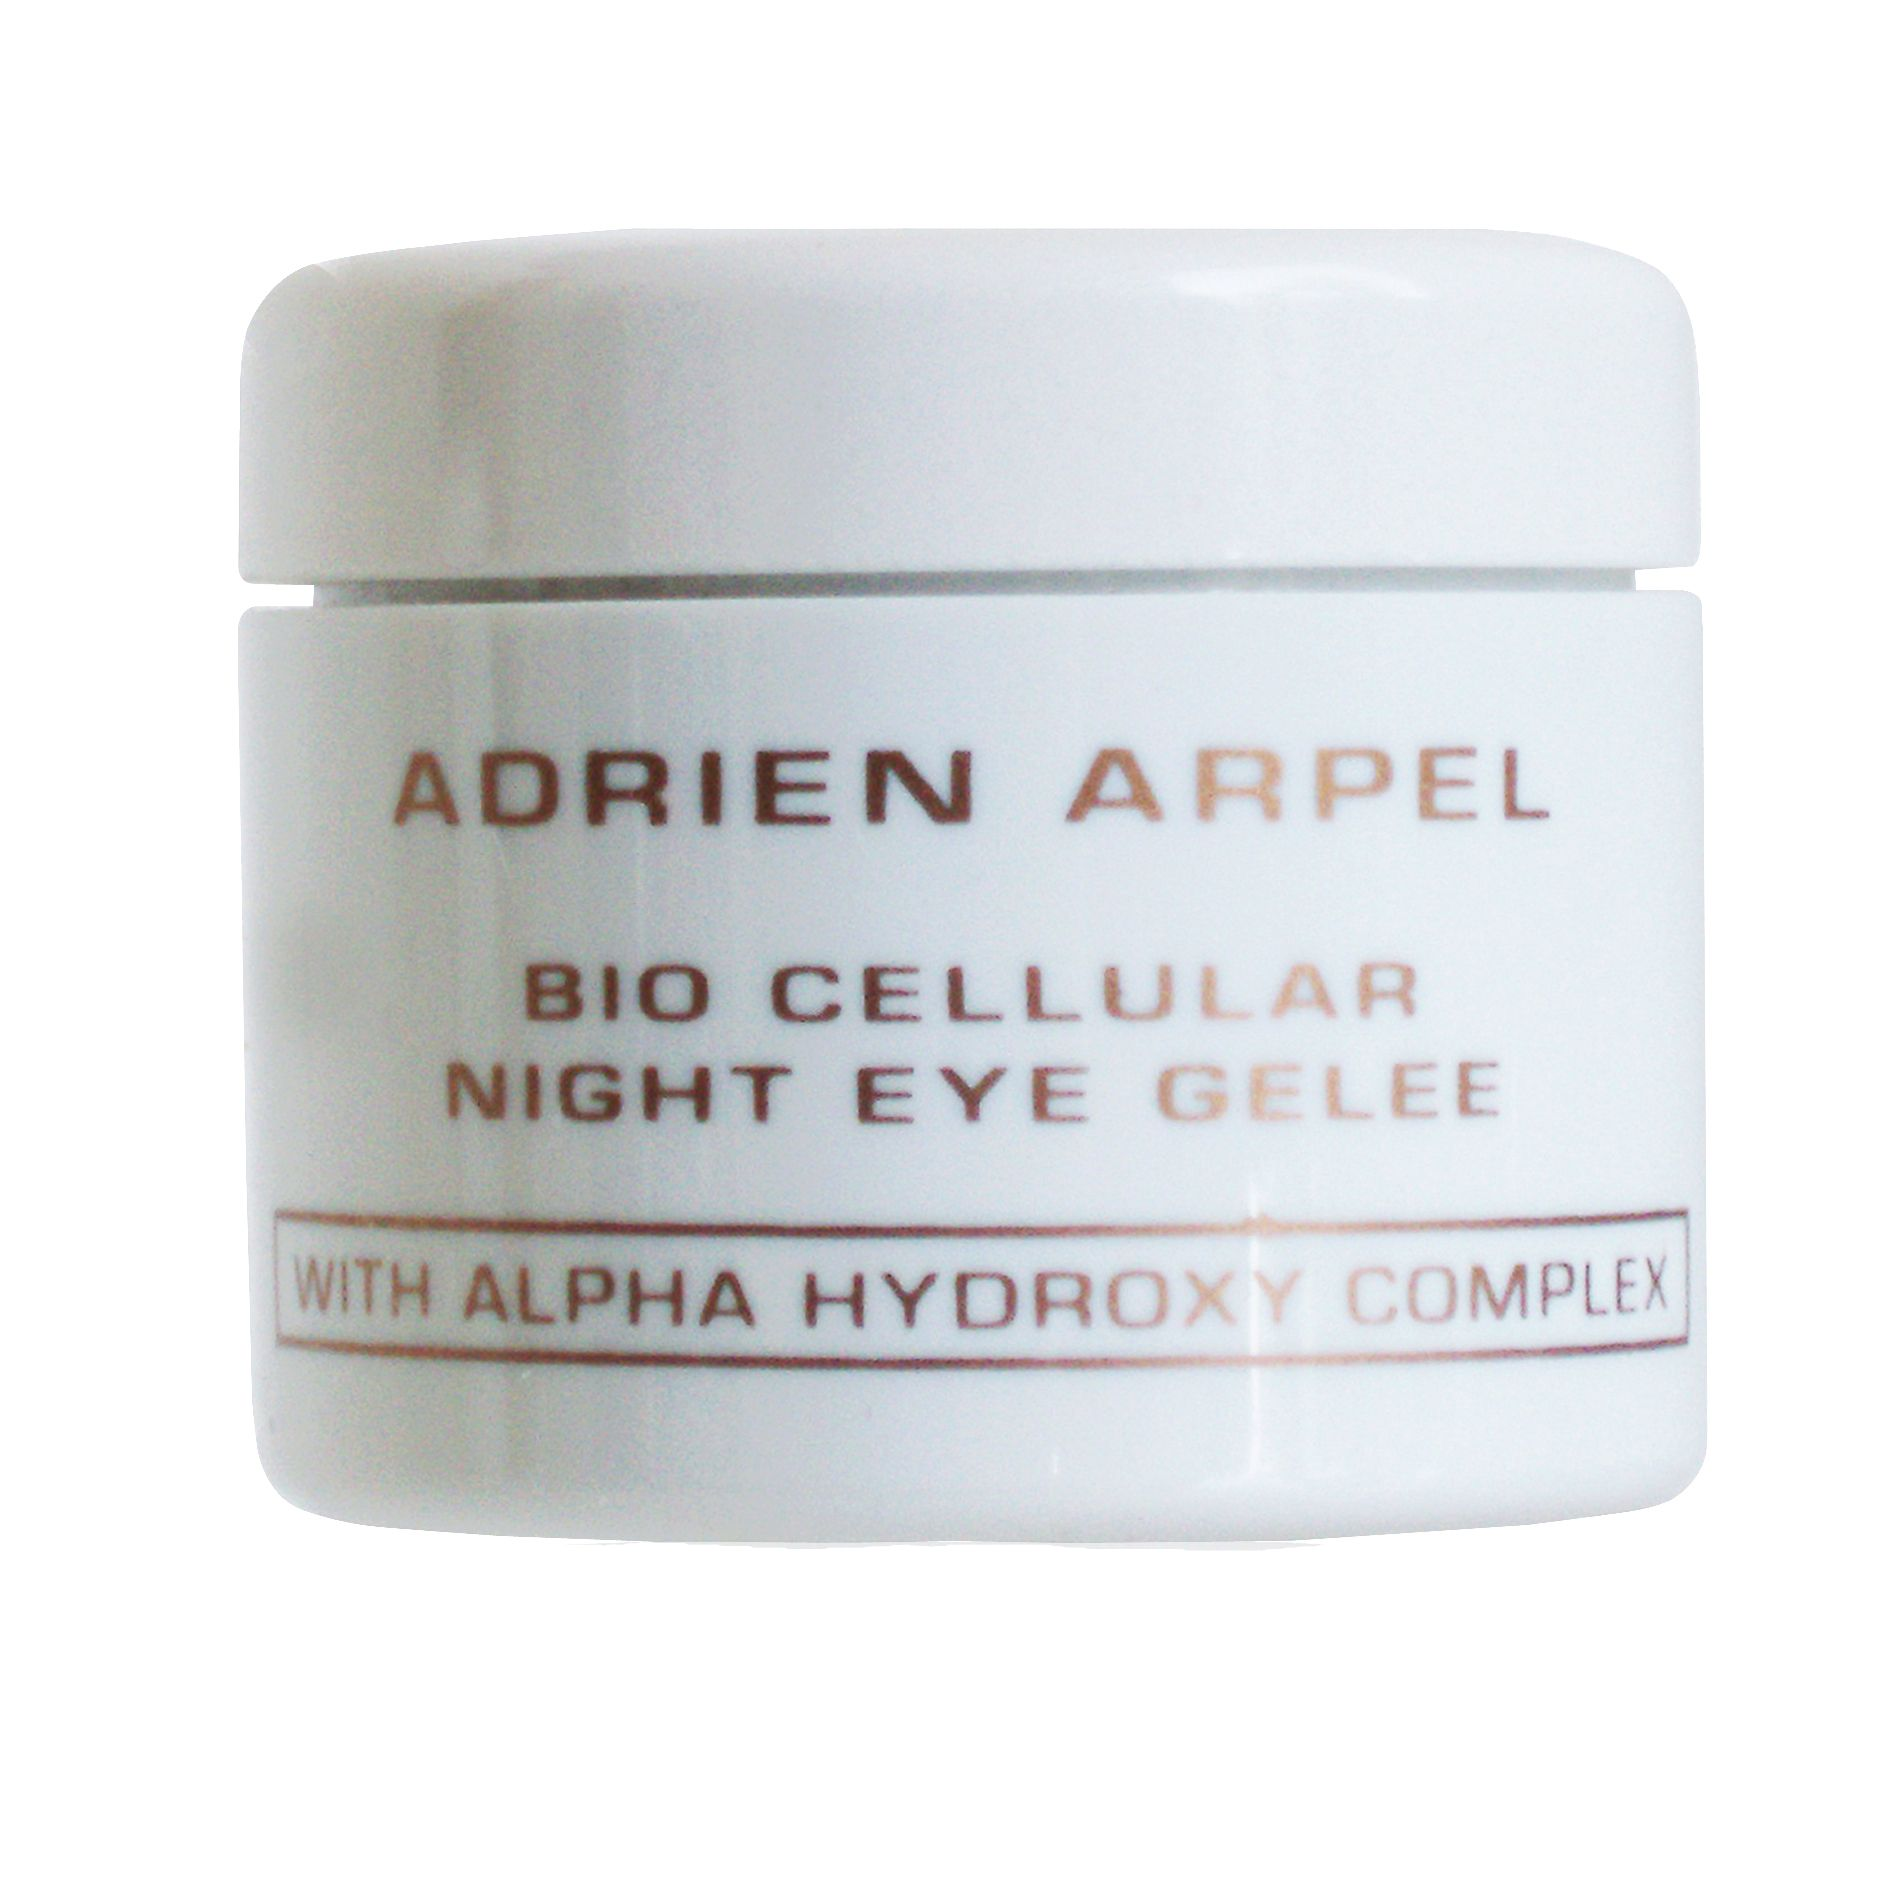 'Adrien Arpel Bio Cellular Night Eye Gelee